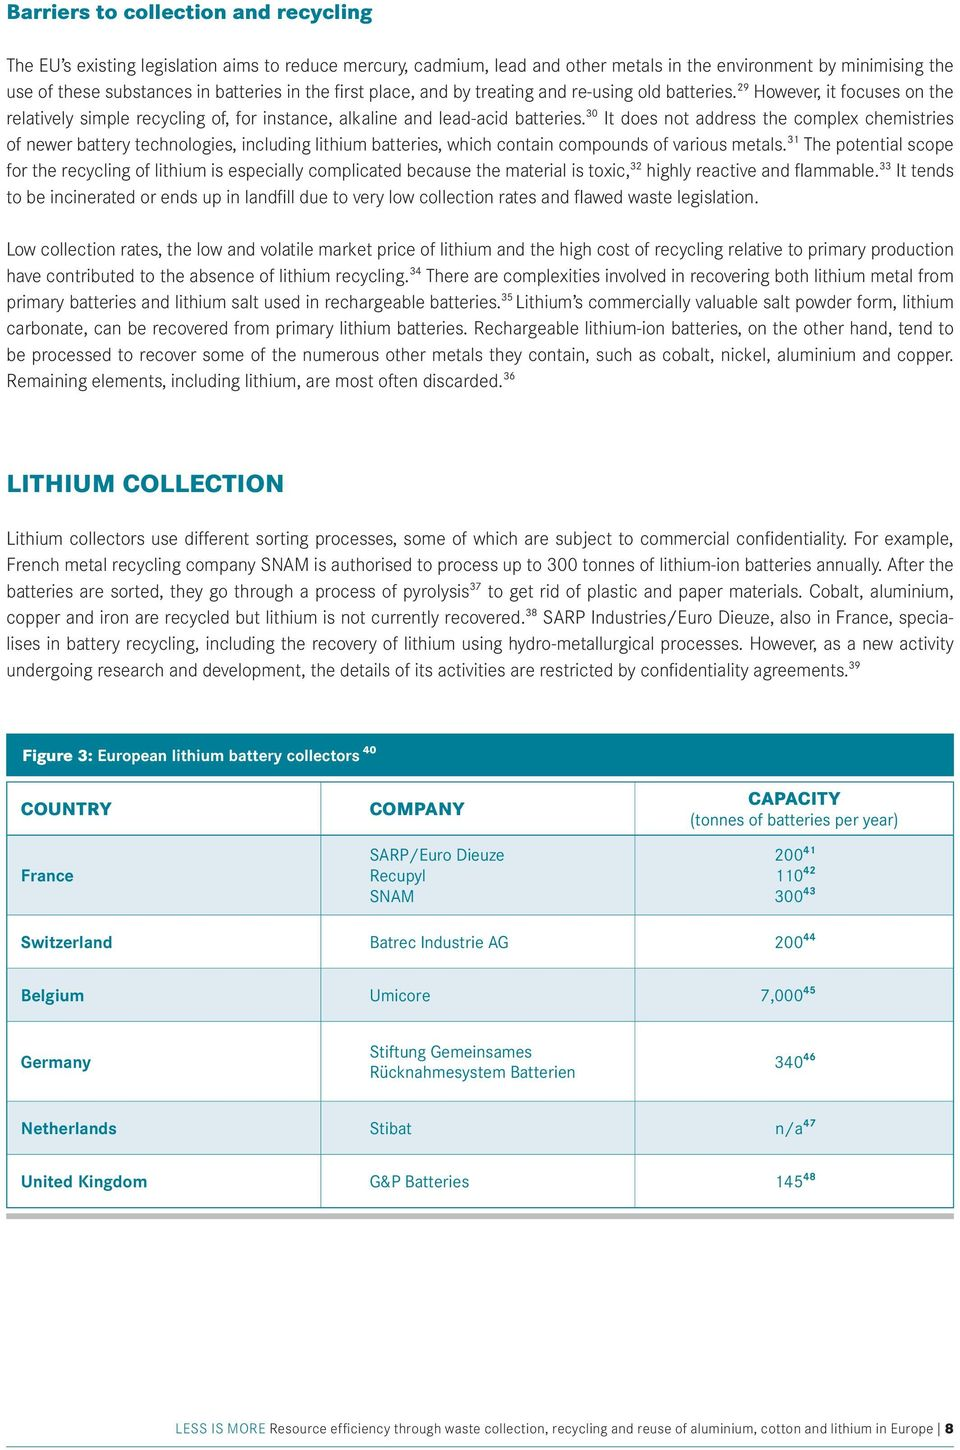 30 It does not address the complex chemistries of newer battery technologies, including lithium batteries, which contain compounds of various metals.